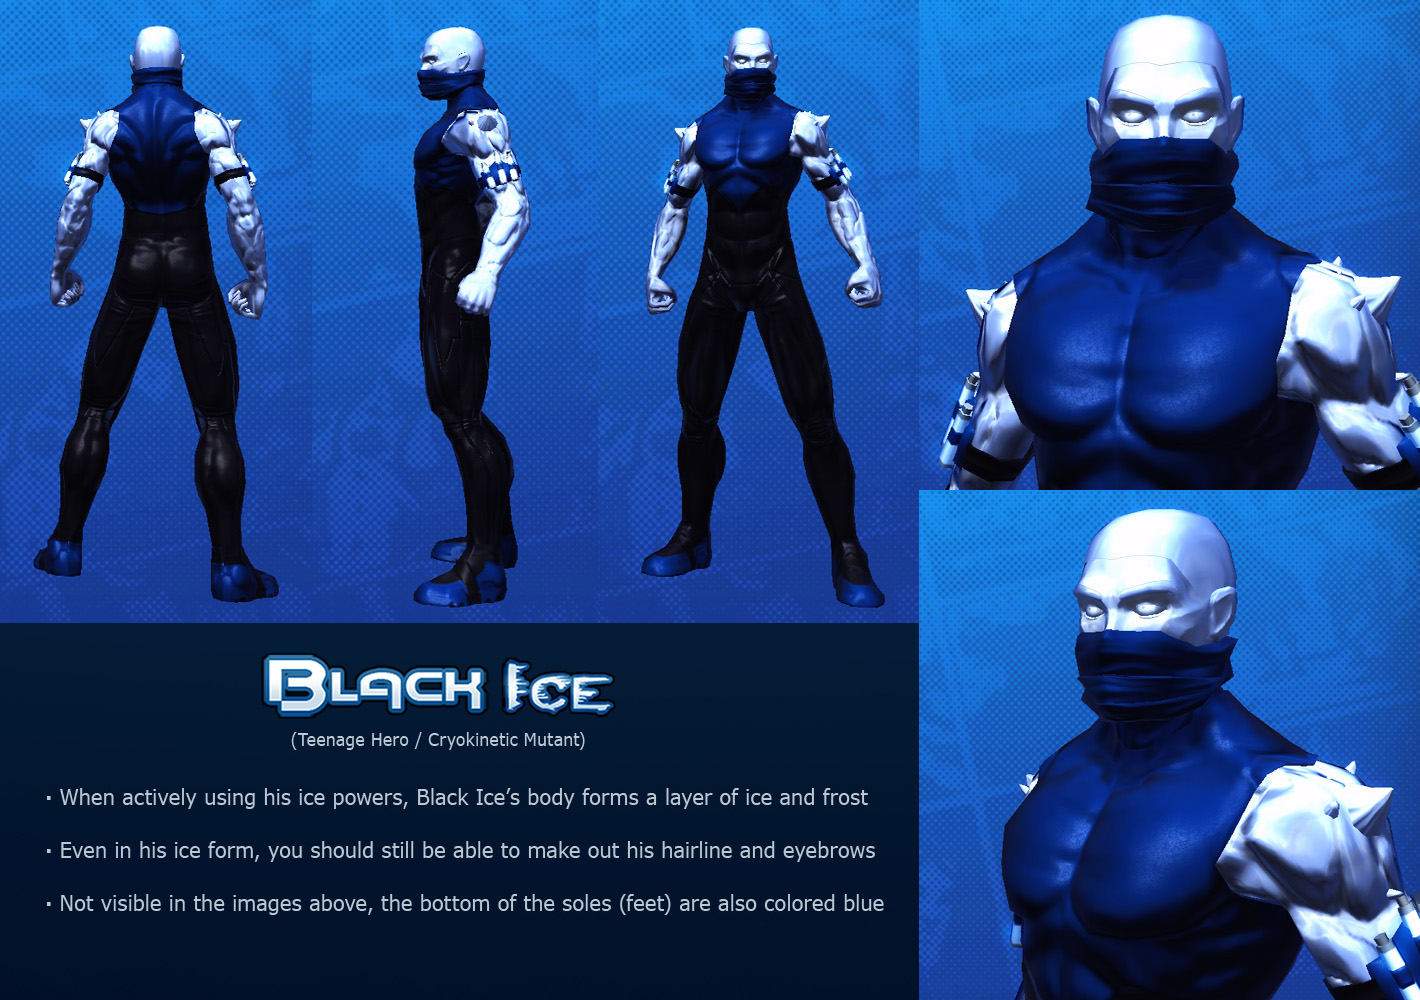 File:Black Ice character reference sheet.jpg - PRIMUS Database